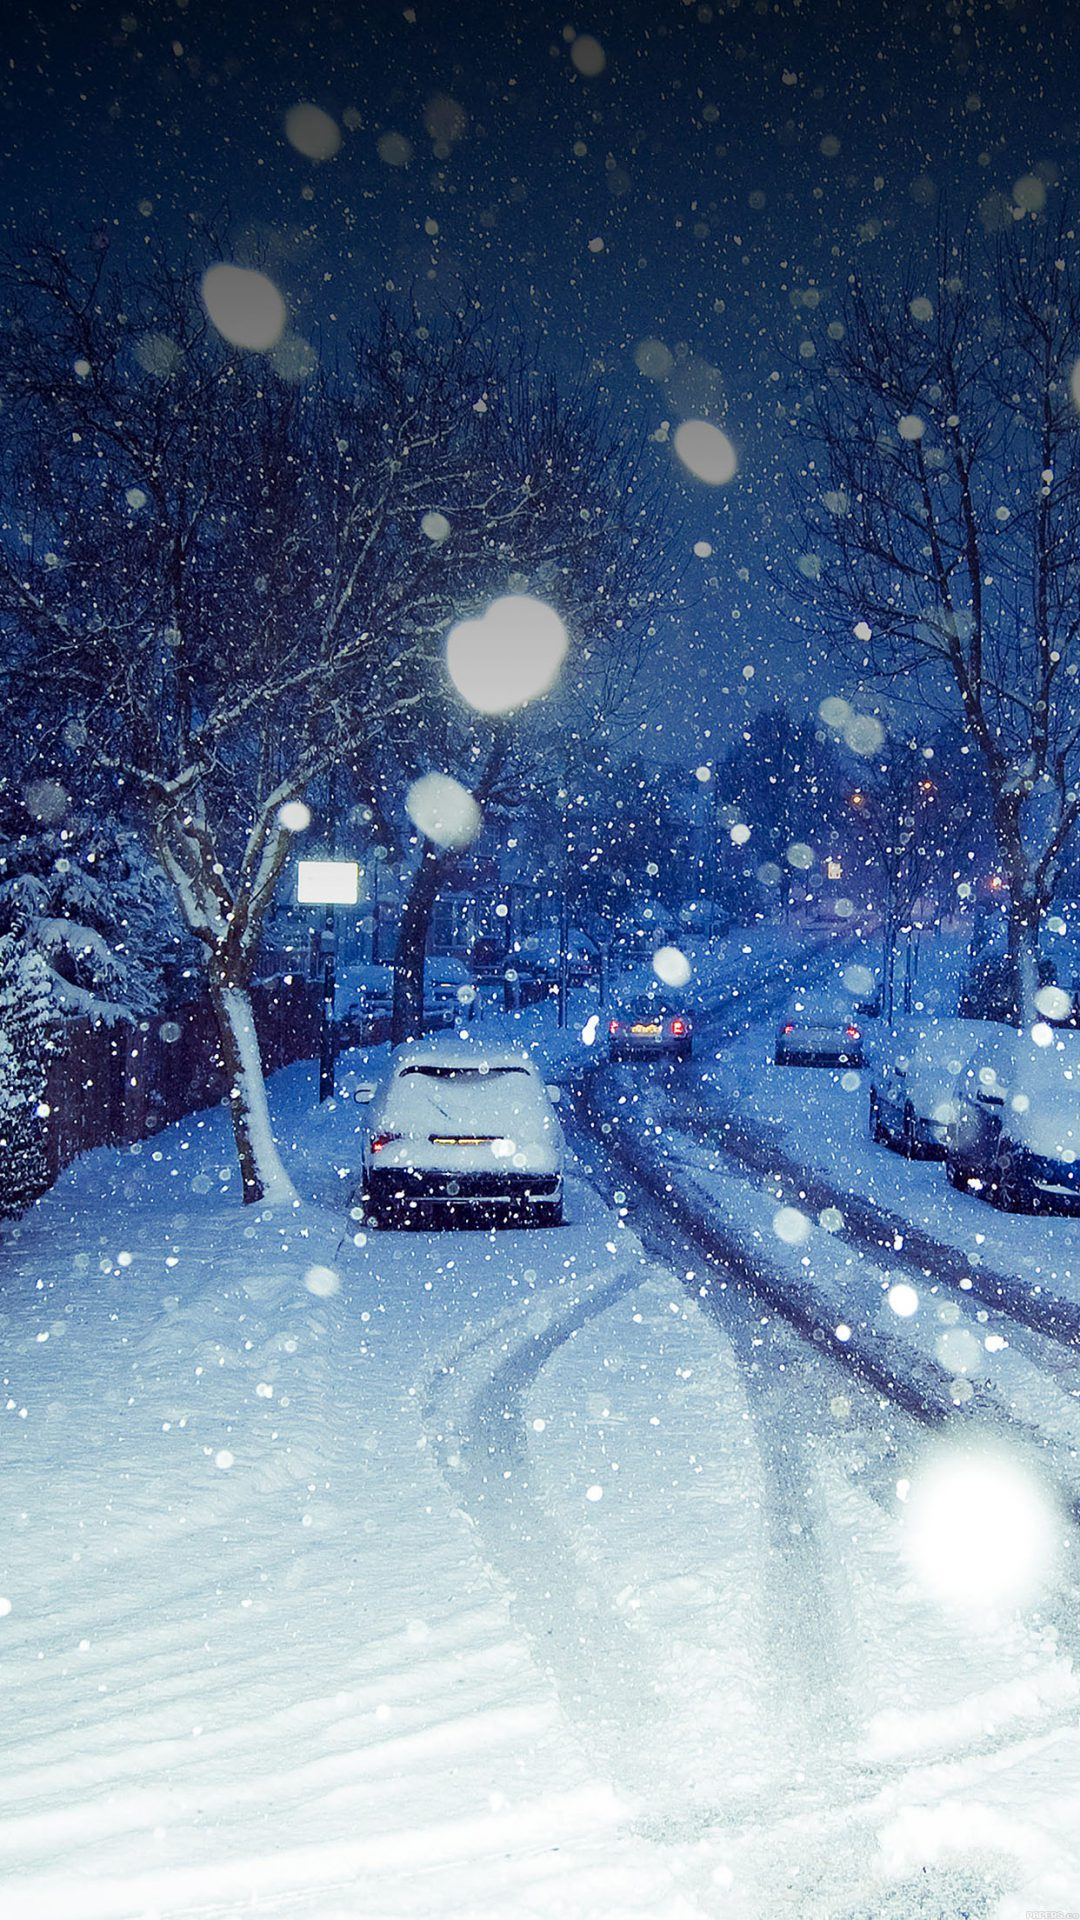 Snowy Blue Road Winter Nature